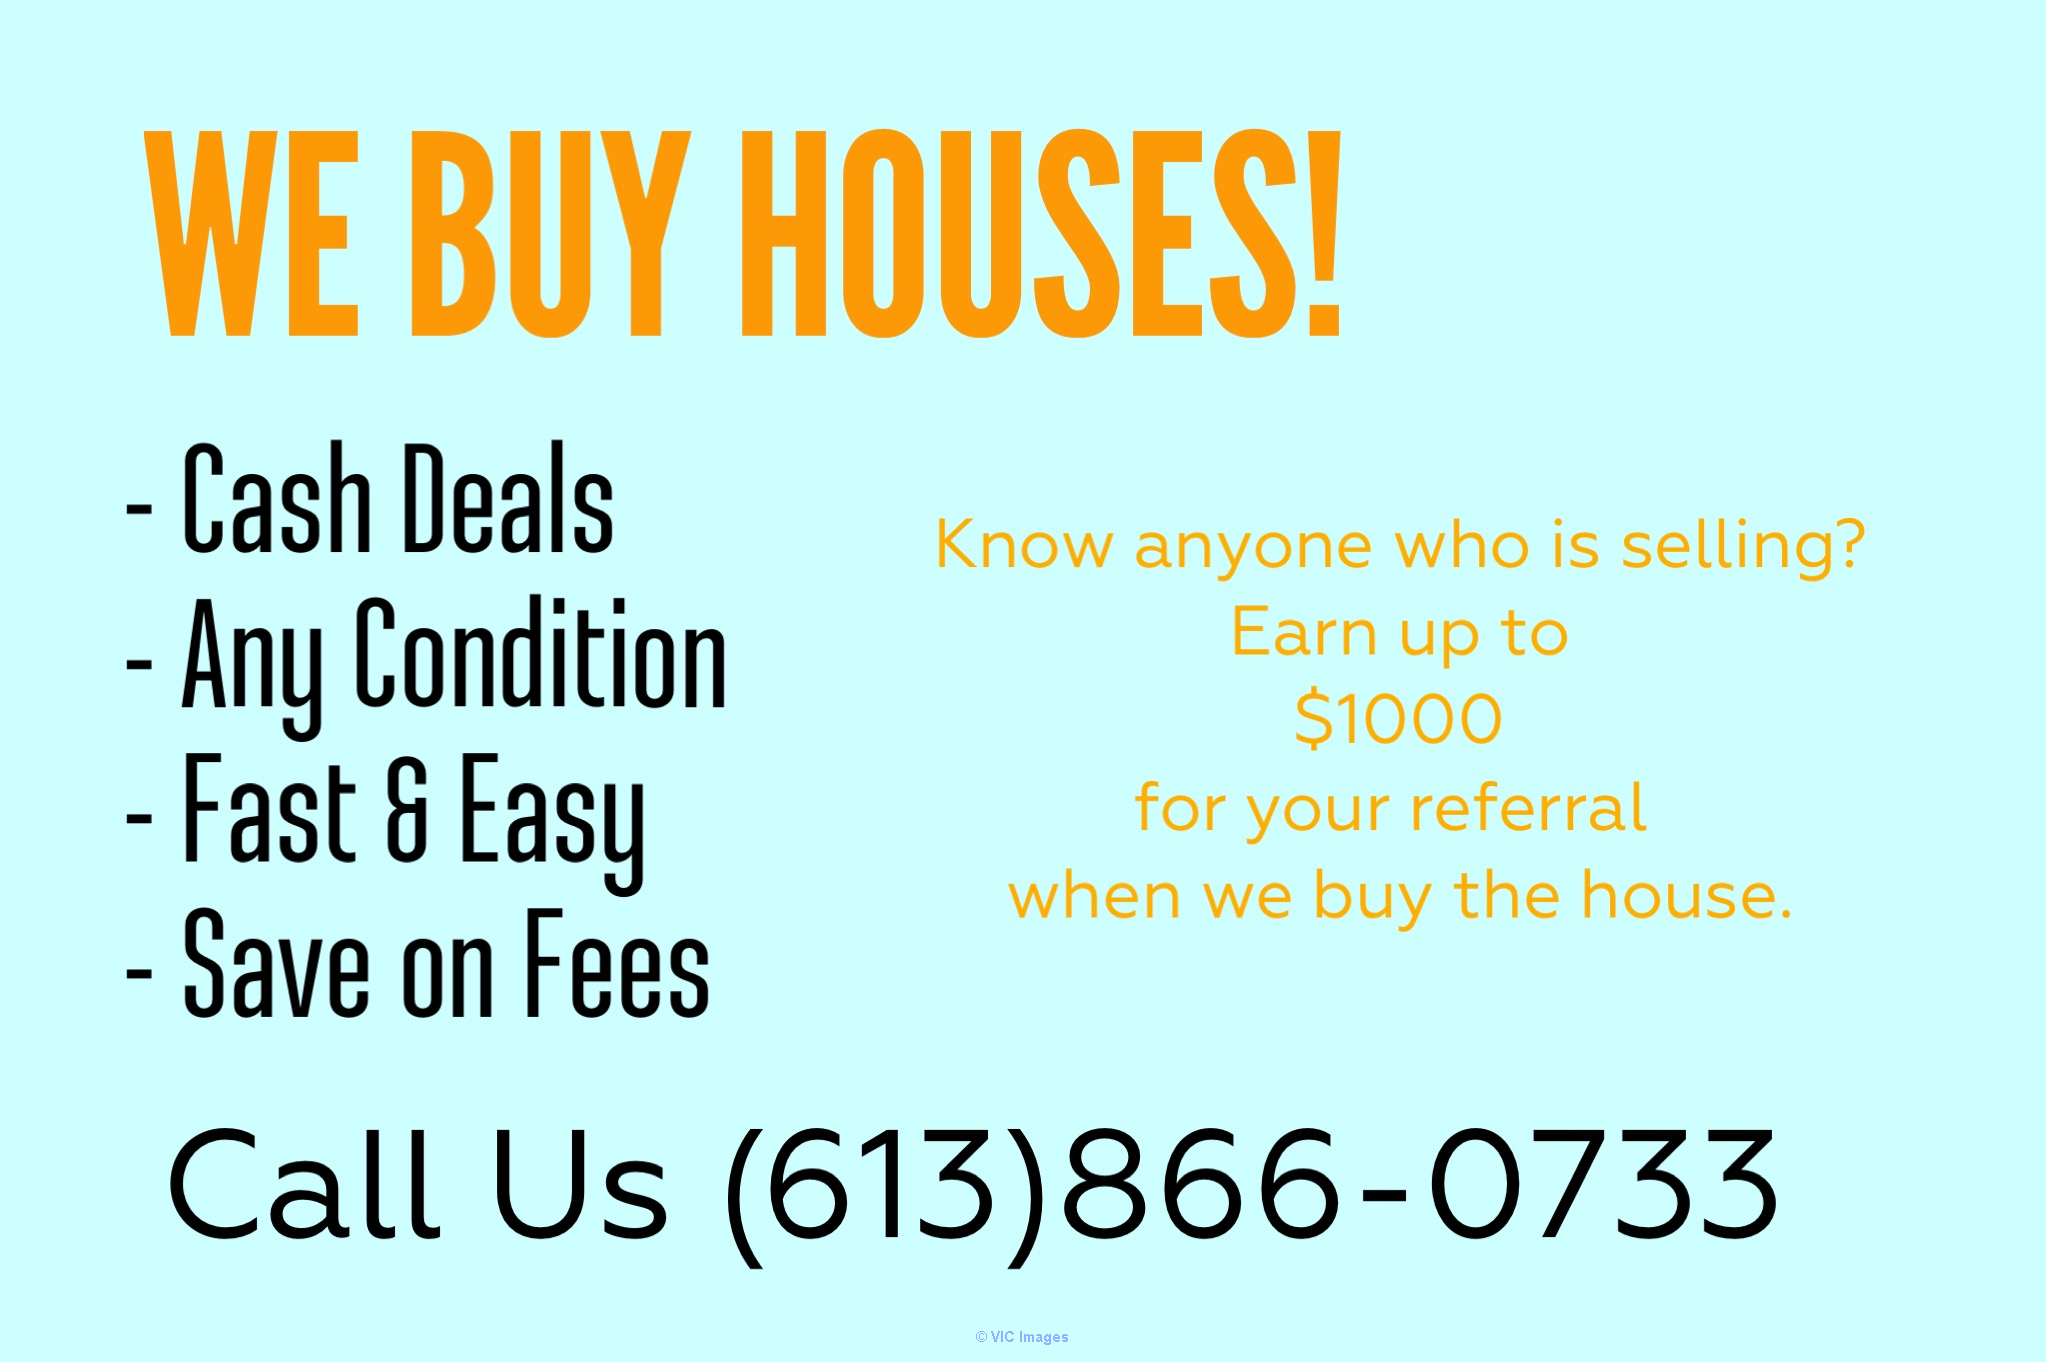 We Buy Houses in Any Condition, Cash! Ottawa, Ontario, Canada Classifieds